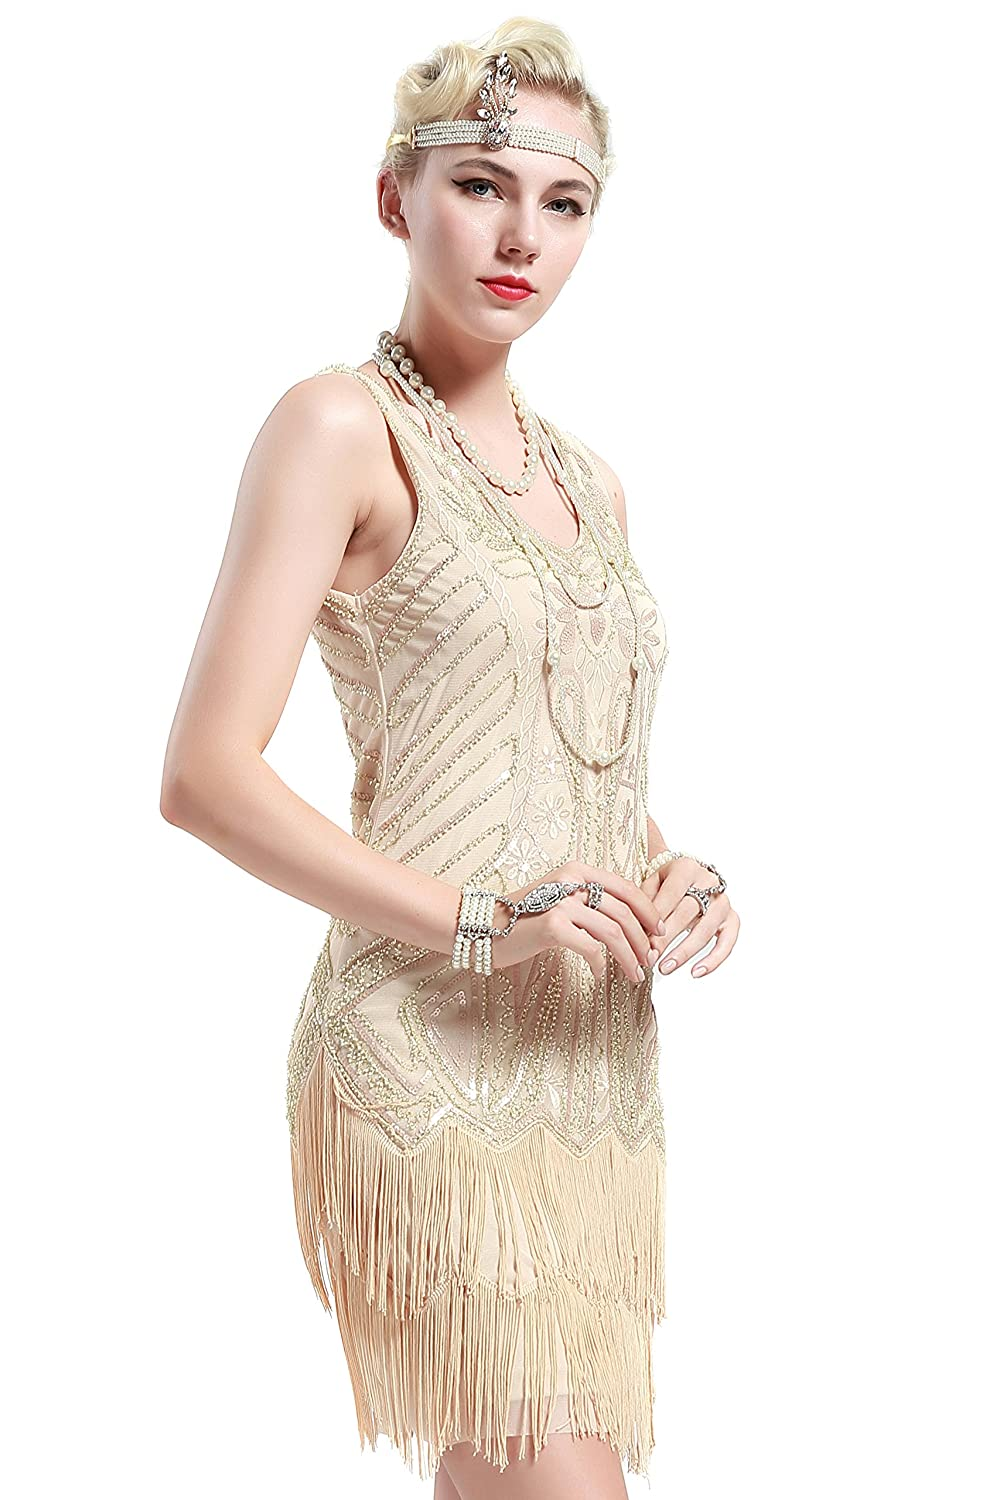 1920s Evening Dresses & Formal Gowns Flapper Dresses 1920s V Neck Beaded Fringed Great Gatsby Dress $28.99 AT vintagedancer.com